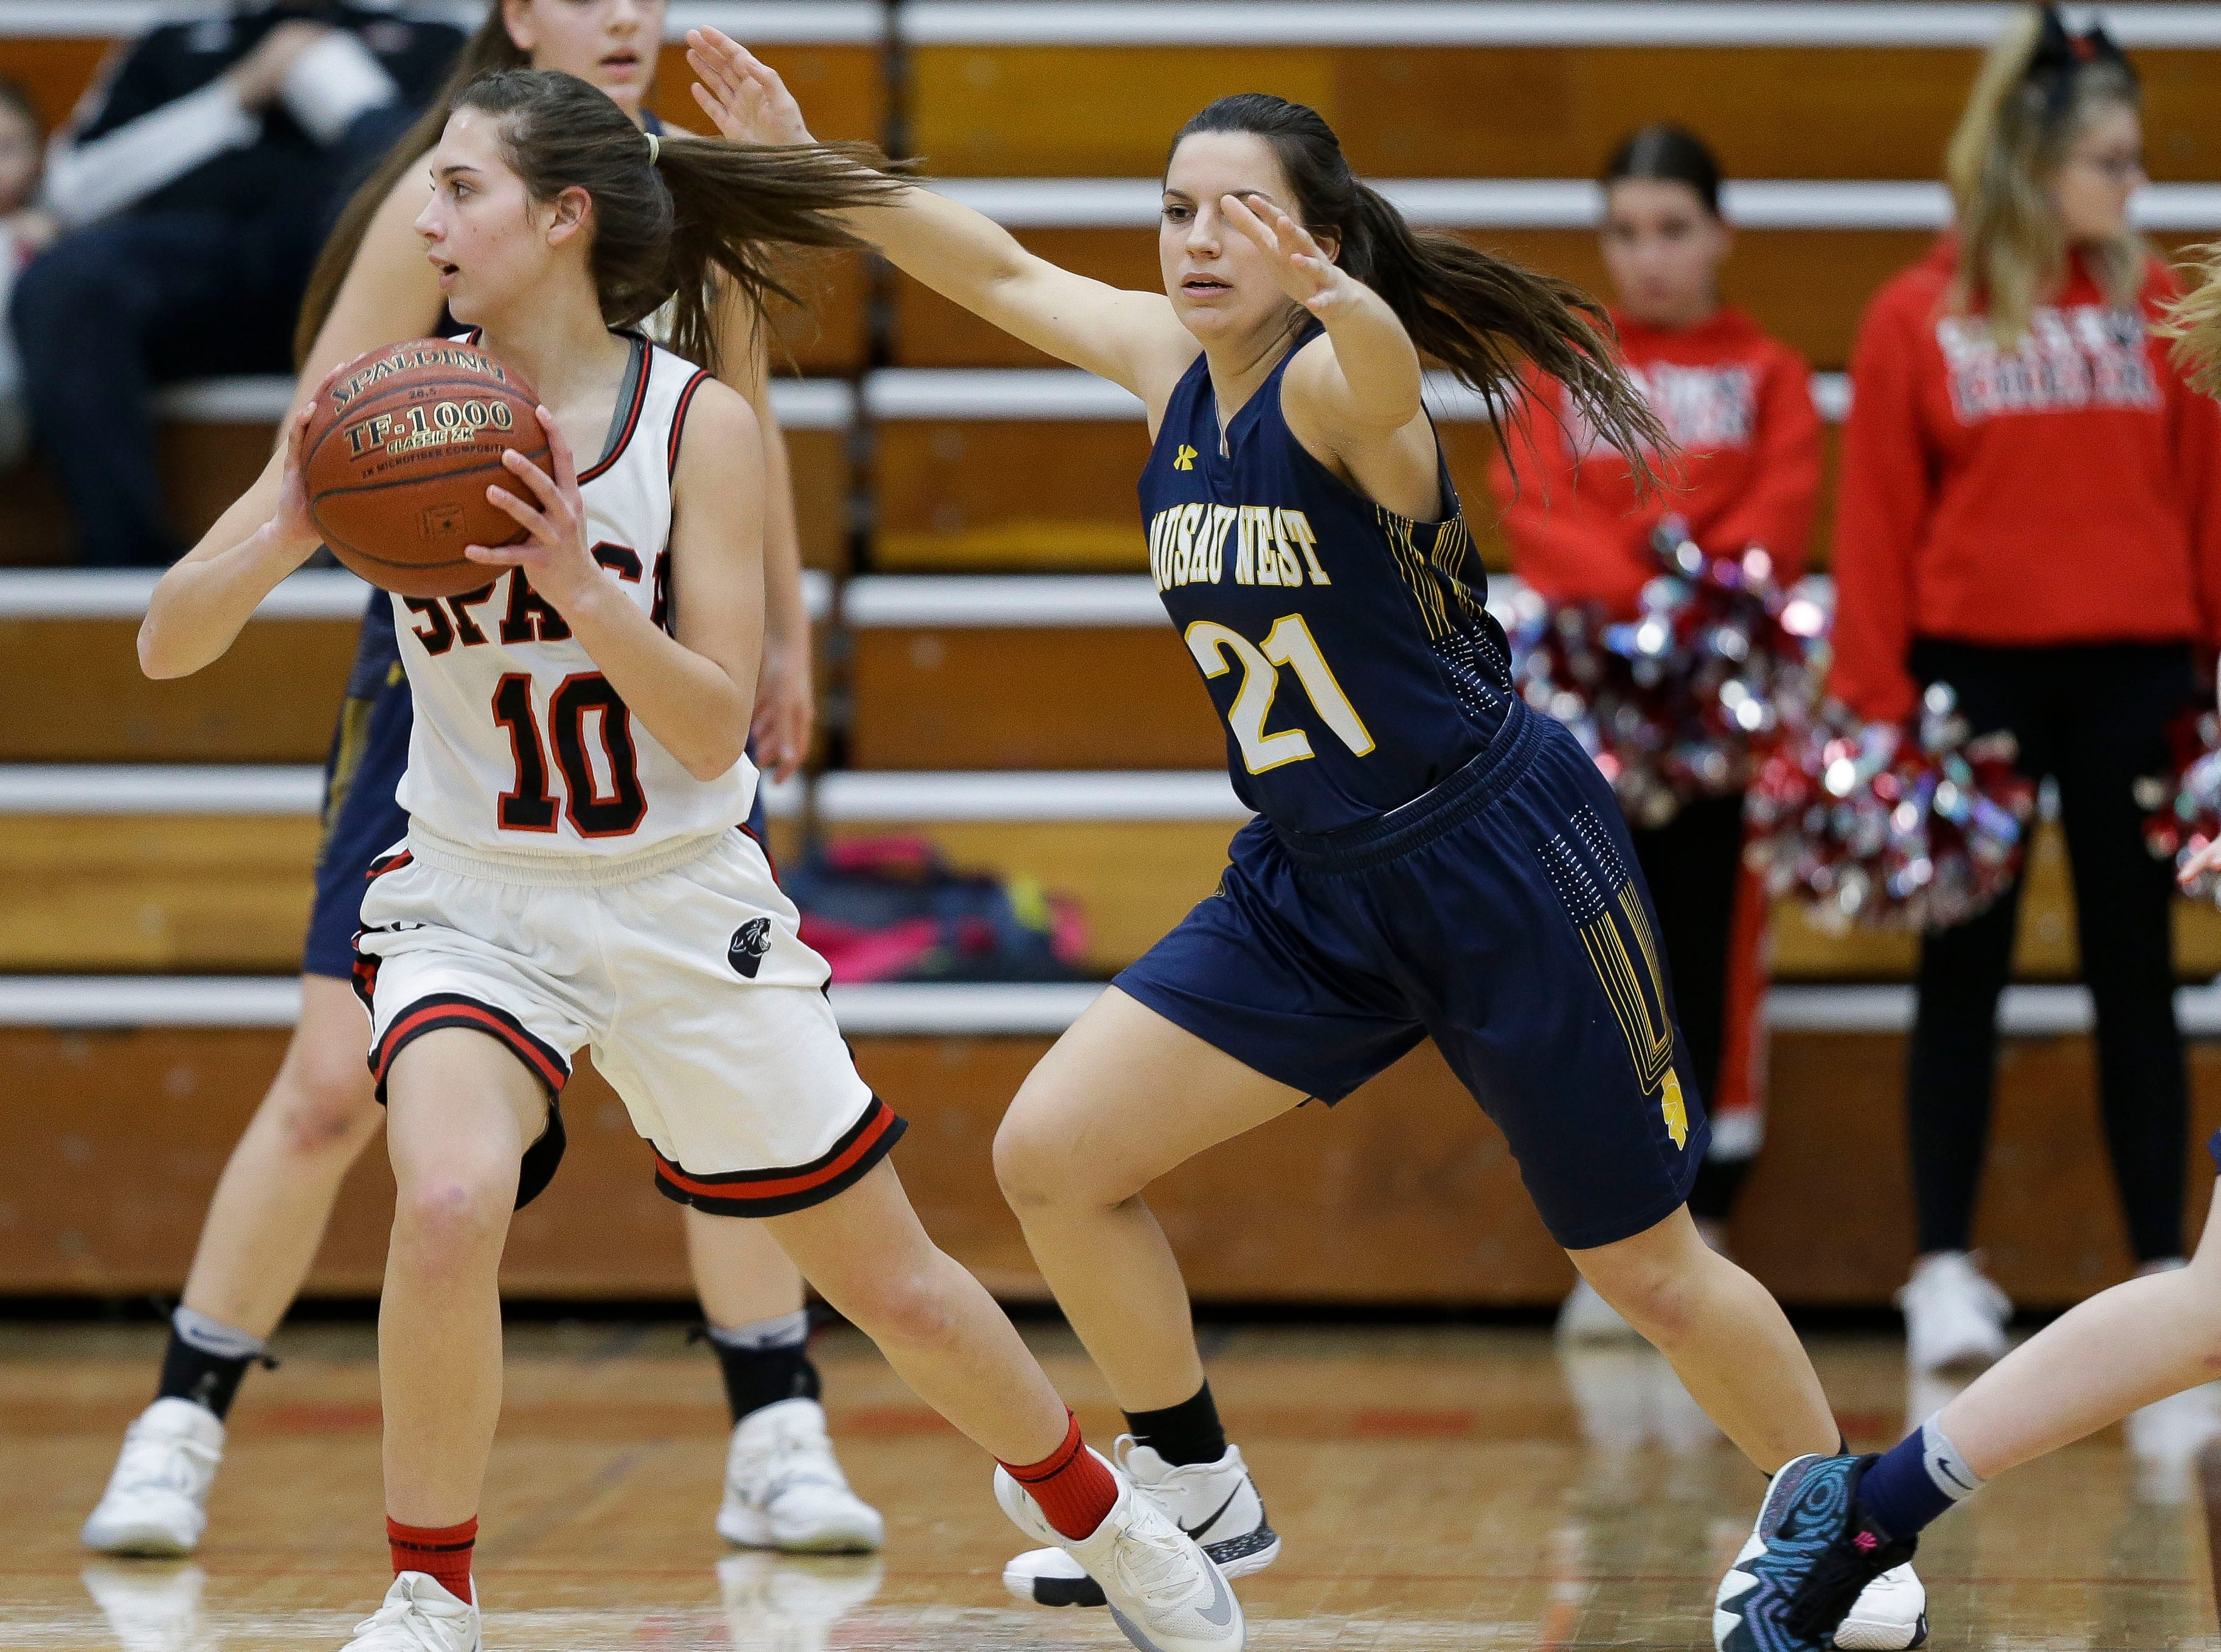 Wausau West's Shpresa Shabani (21) defends as SPASH's Alyssa Standifer (10) looks to pass on Thursday, February 14, 2019, at SPASH in Stevens Point, Wis.Tork Mason/USA TODAY NETWORK-Wisconsin